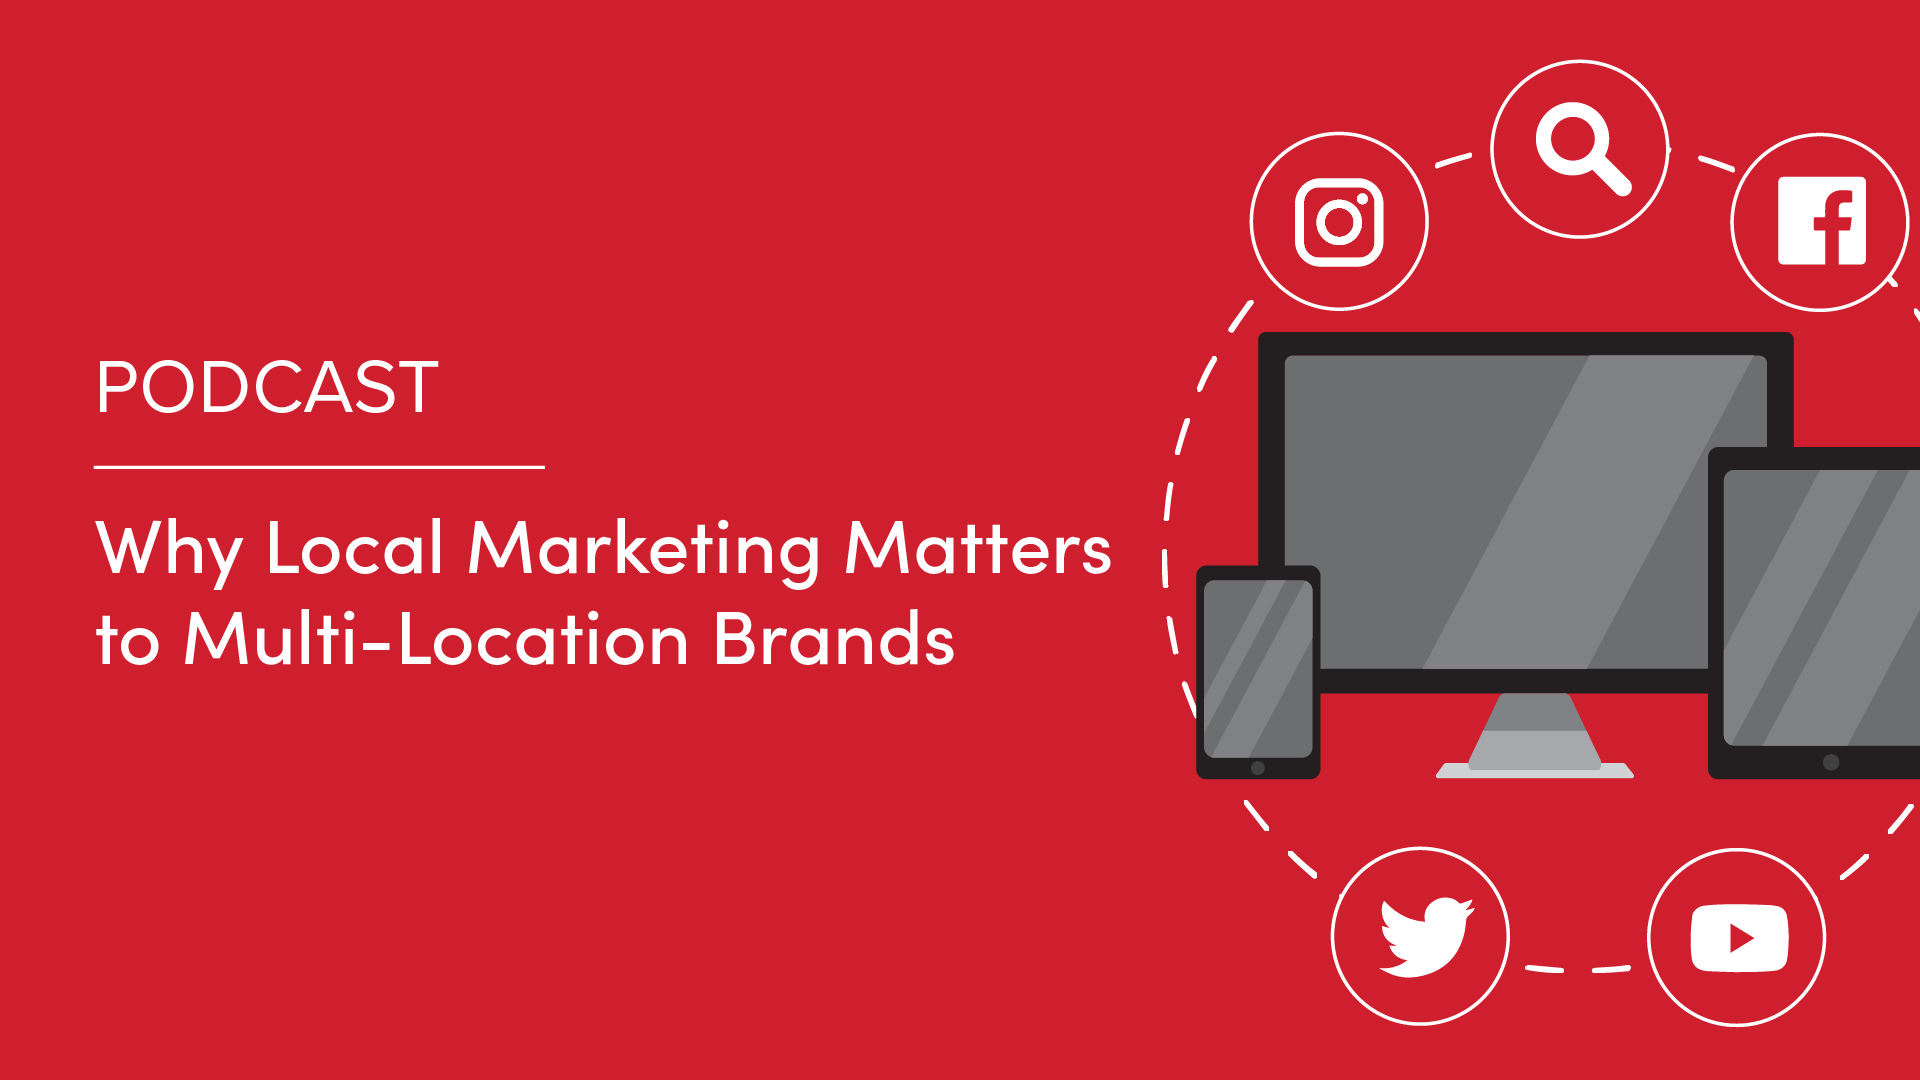 Podcast: Why Local Marketing Matters to Multi-Location Brands